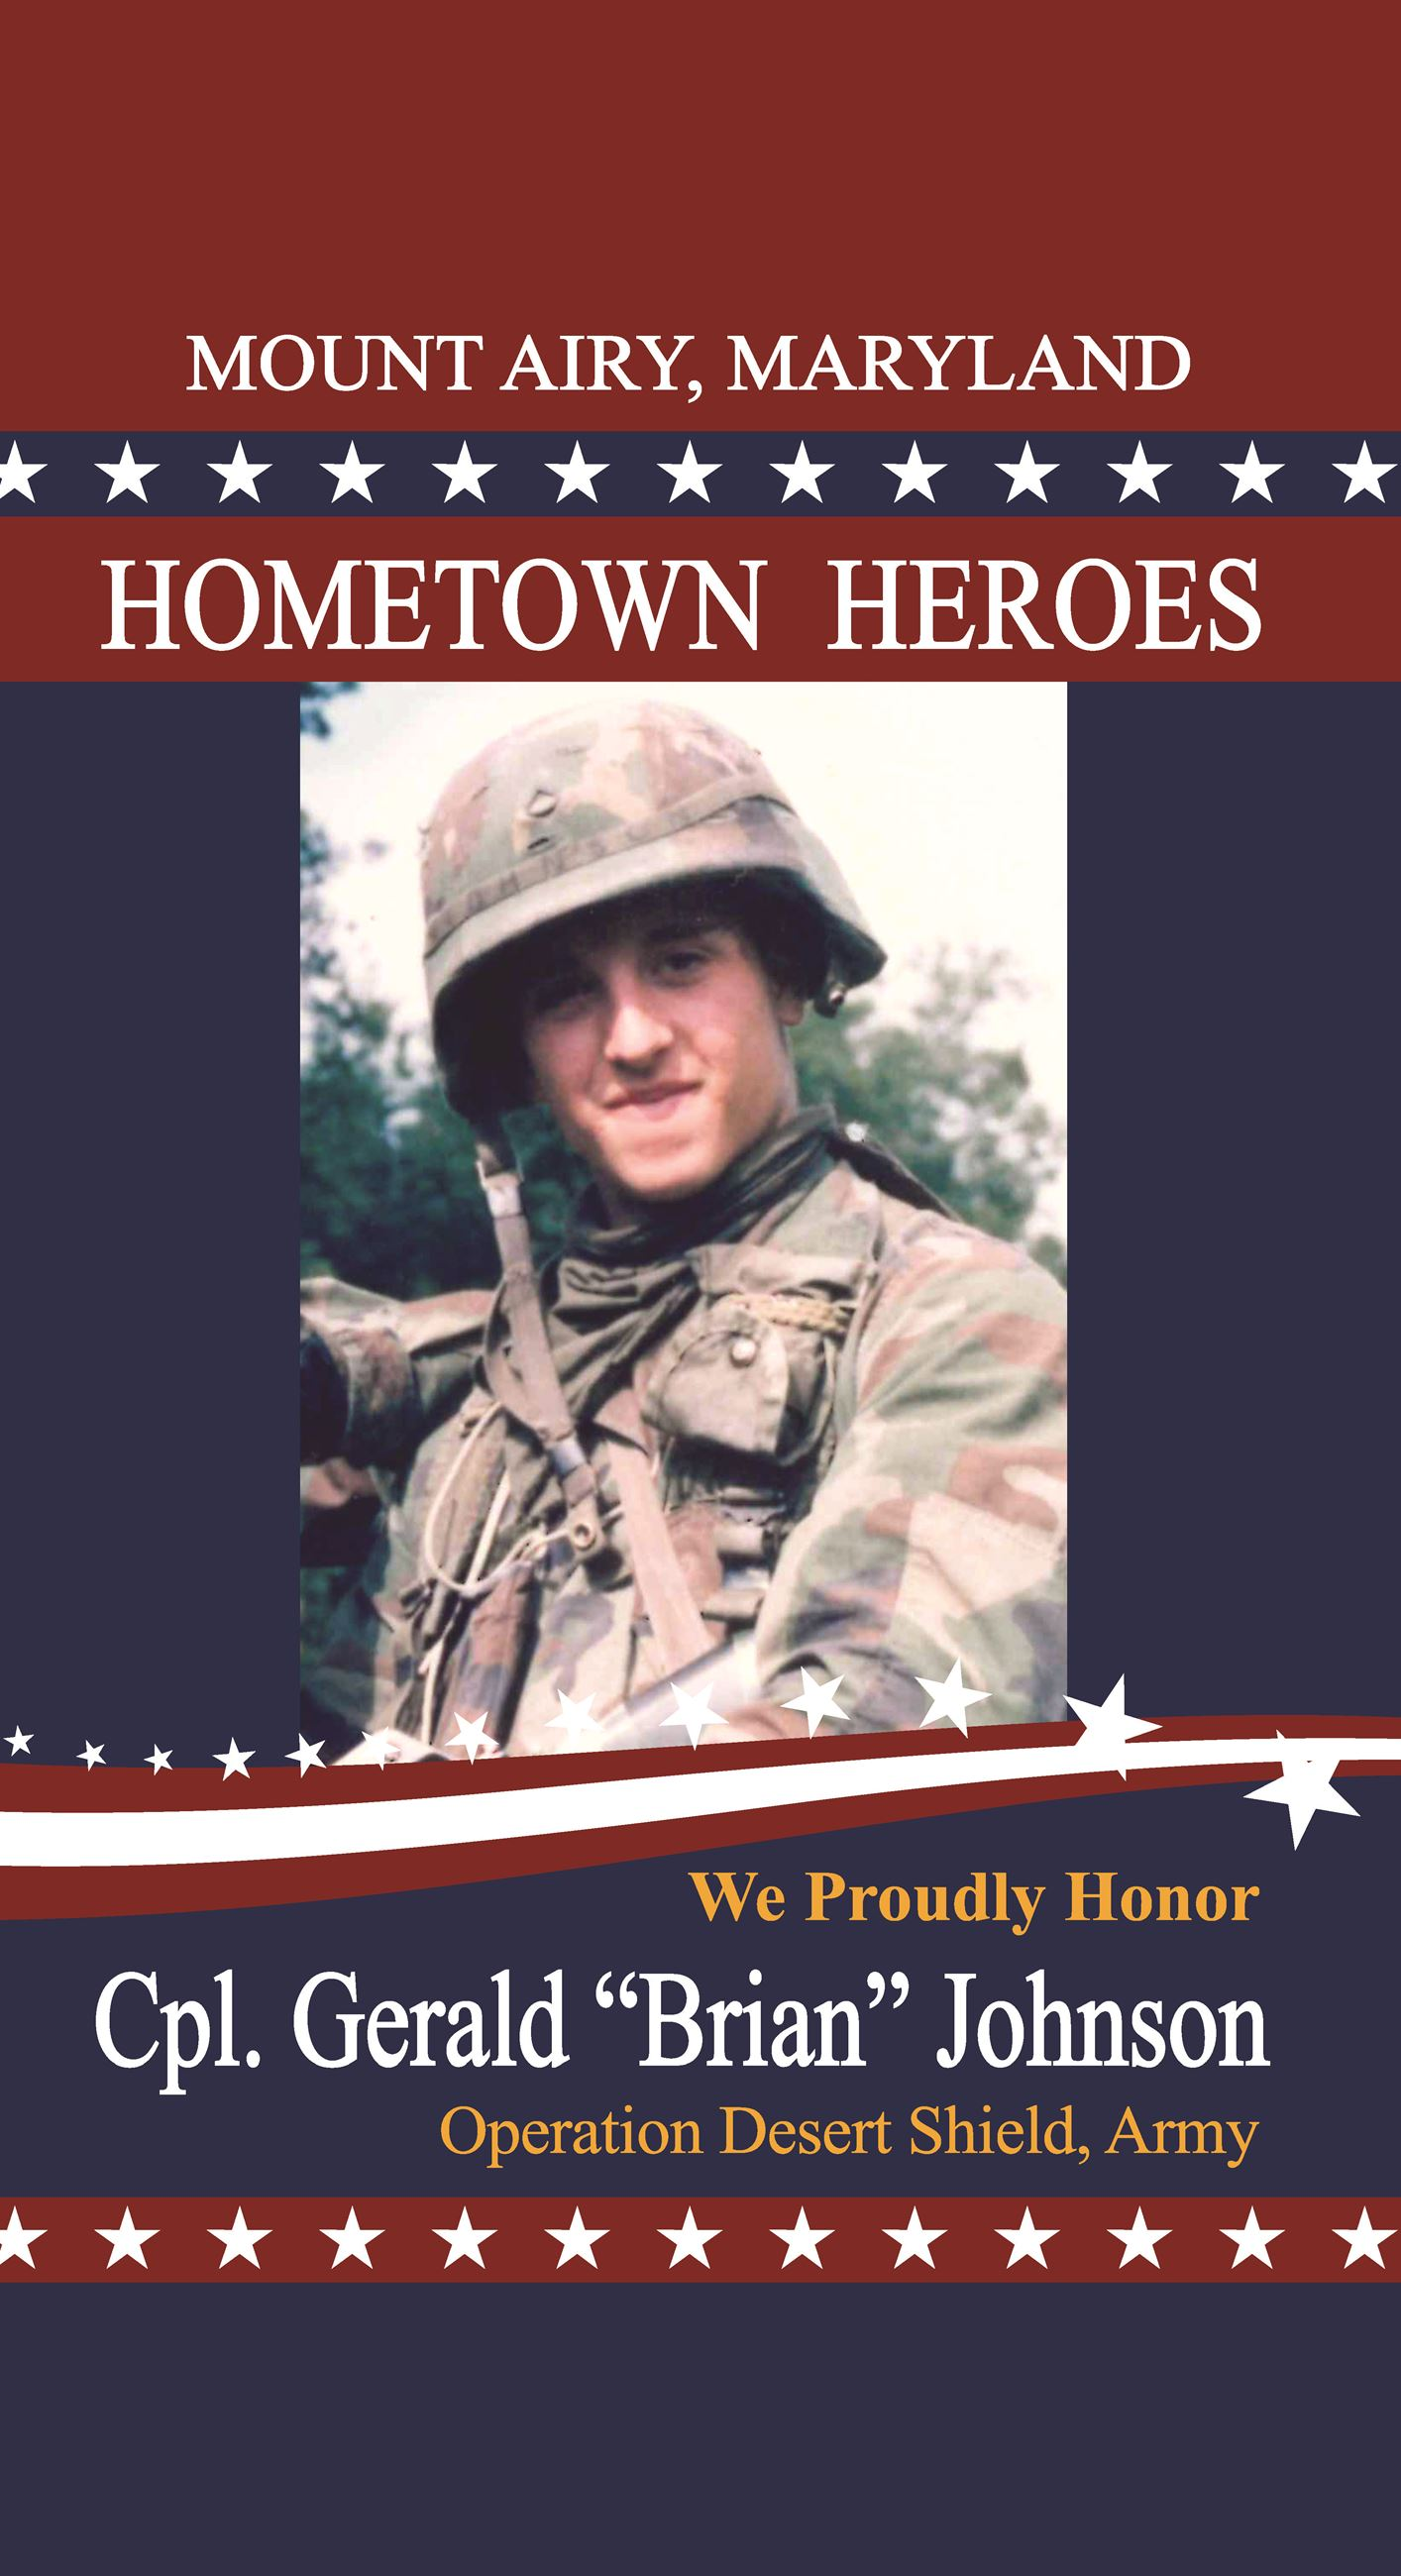 GeraldBrianJohnson_MtAiryHeroes-Flag-24x44-Proof001